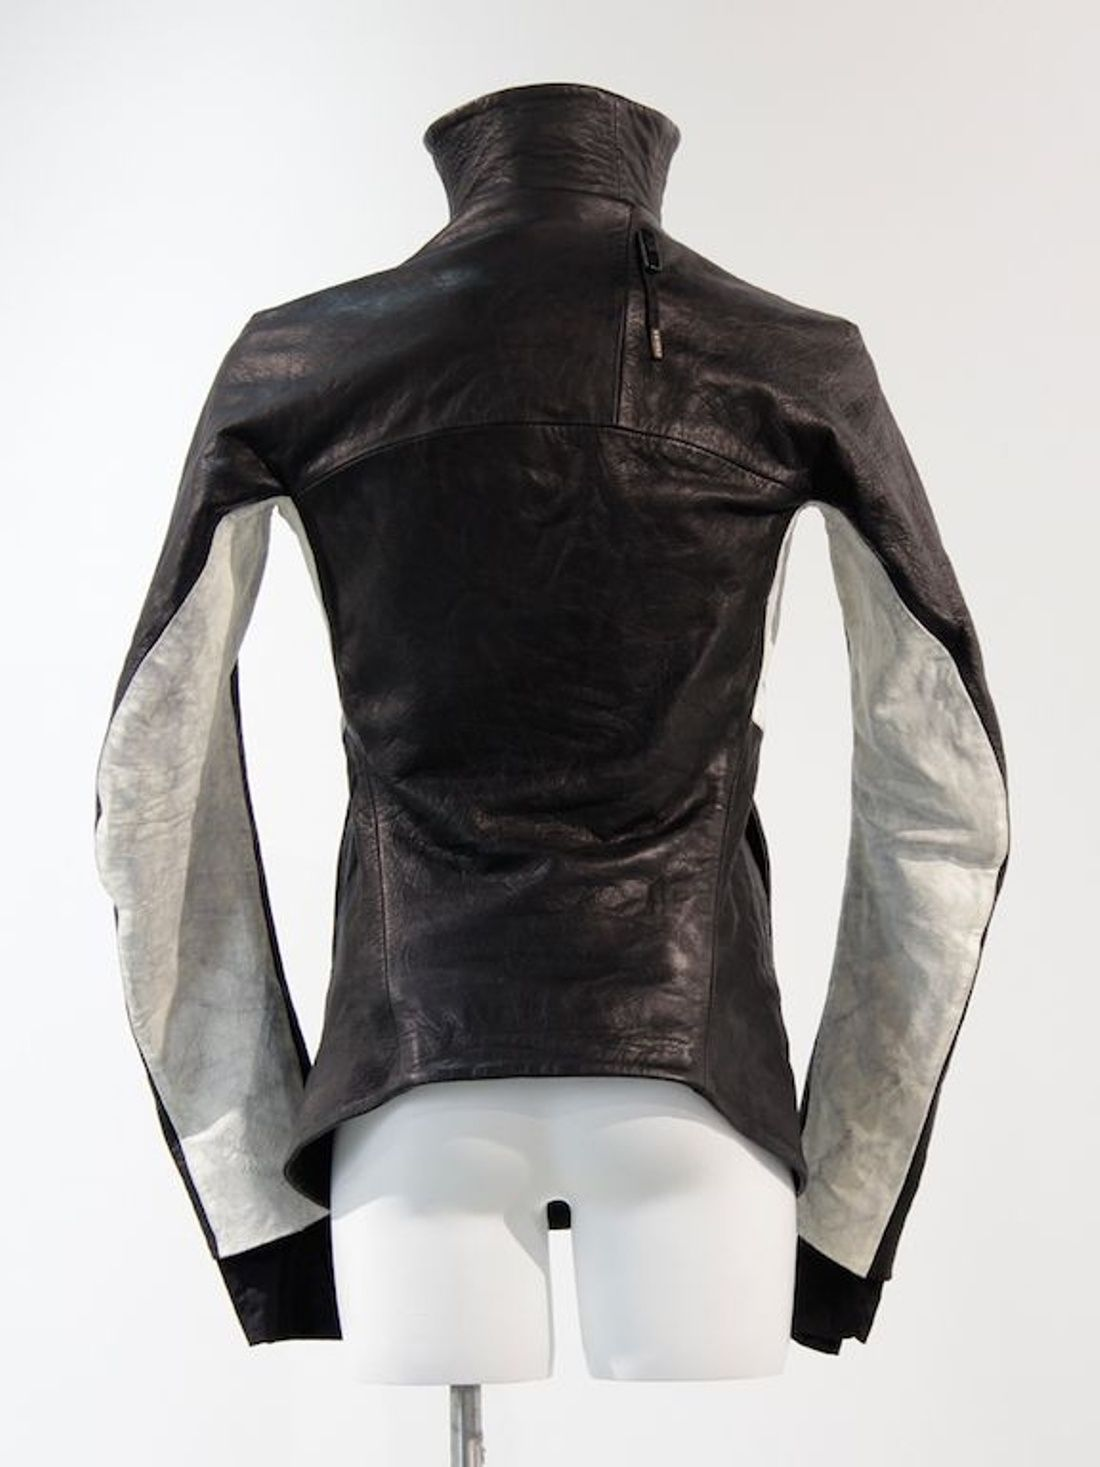 Boris Bidjan Saberi SS14 Black Jacket 1 Brand new with tags and BBS dust bag. Condition 10/10  Size XS Retail $5000  Pictures are actual item  FREE worldwide shipping  Reasonable offers accepted!